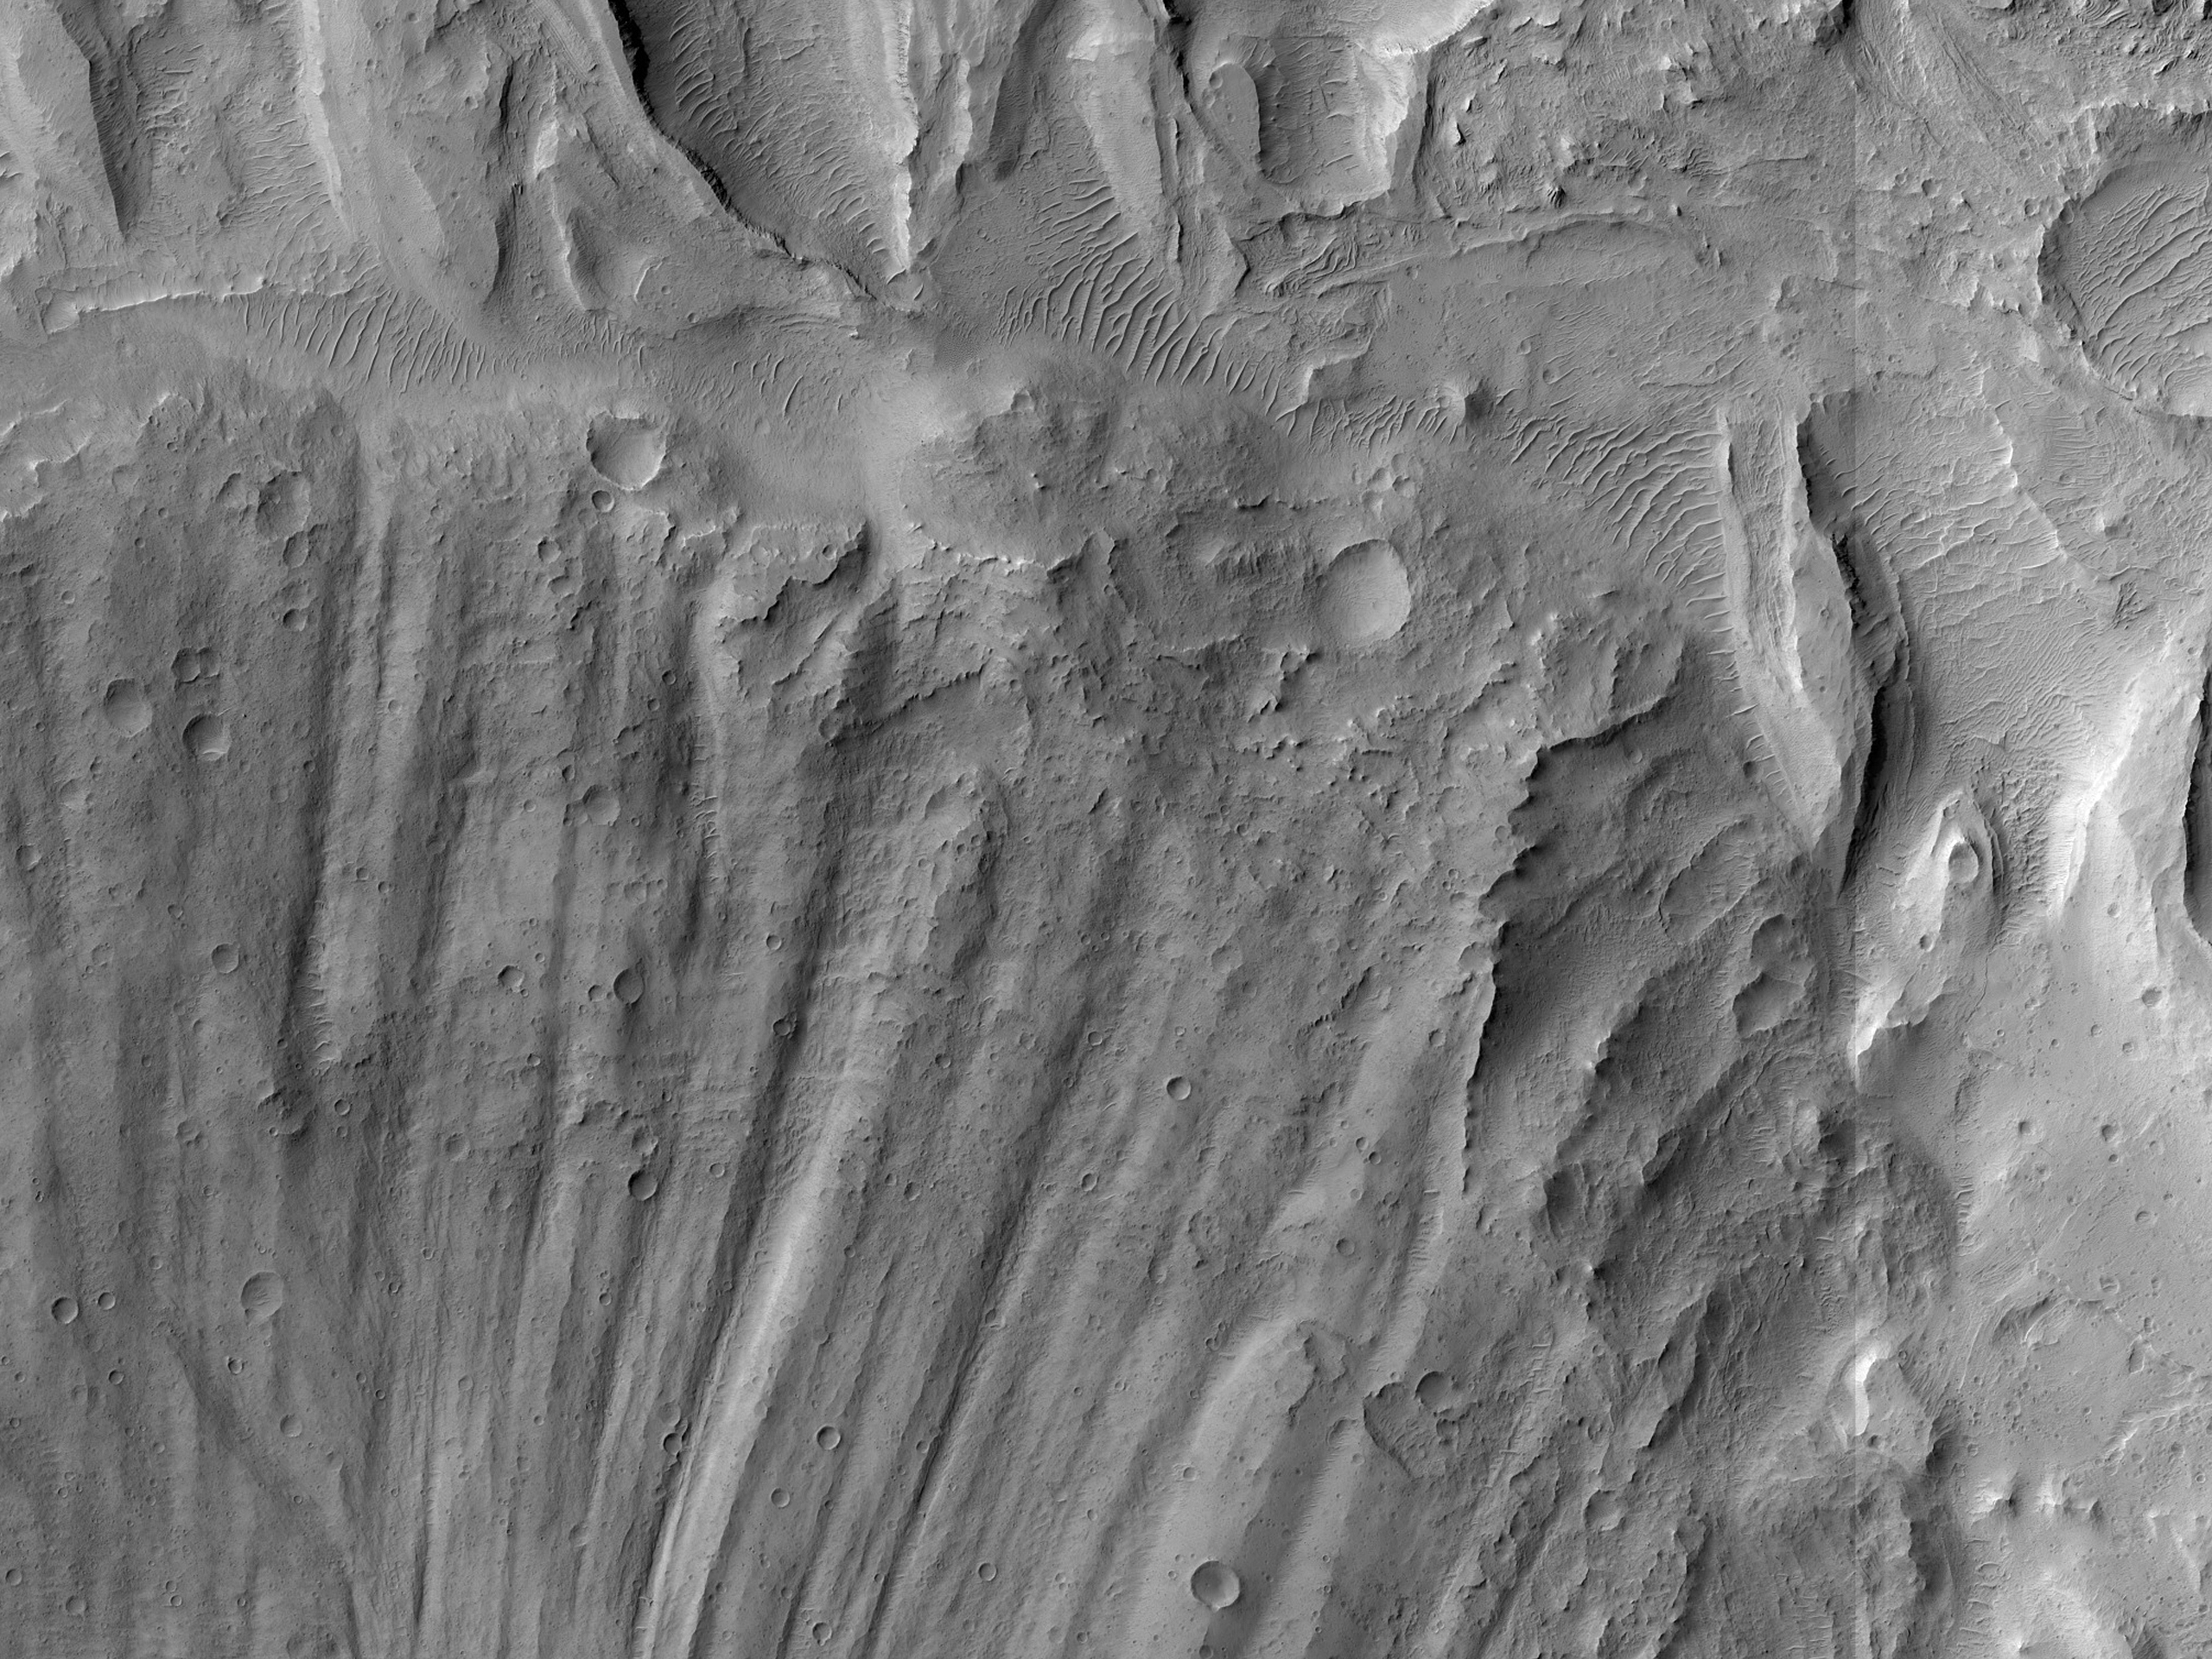 Fan, Meet Layered Deposit